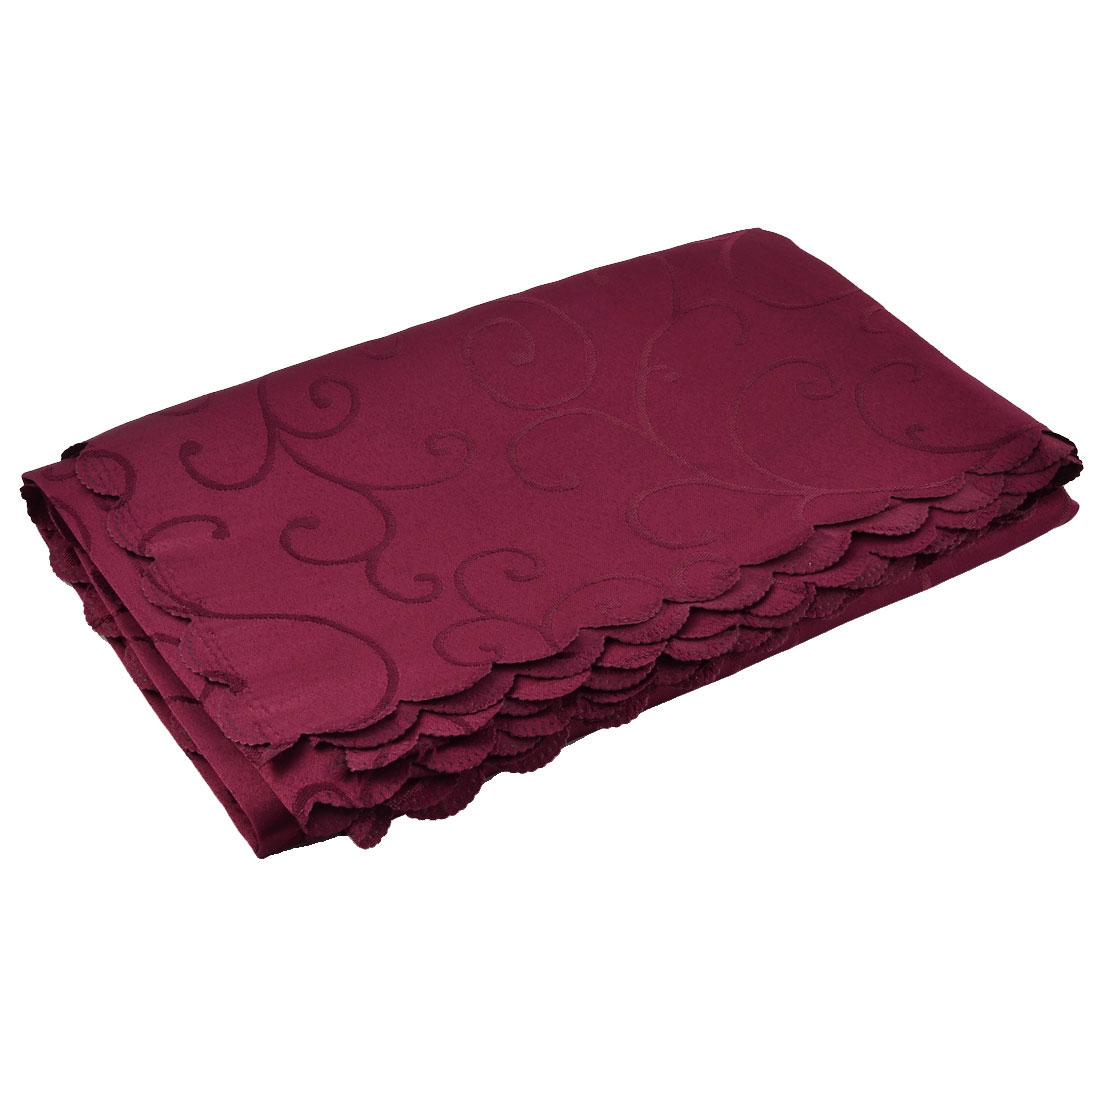 Home Hotel Restaurant Polyester Rectangular Flower Pattern Tablecloth Table Cloth Cover Dark Red 70 x 55 Inch